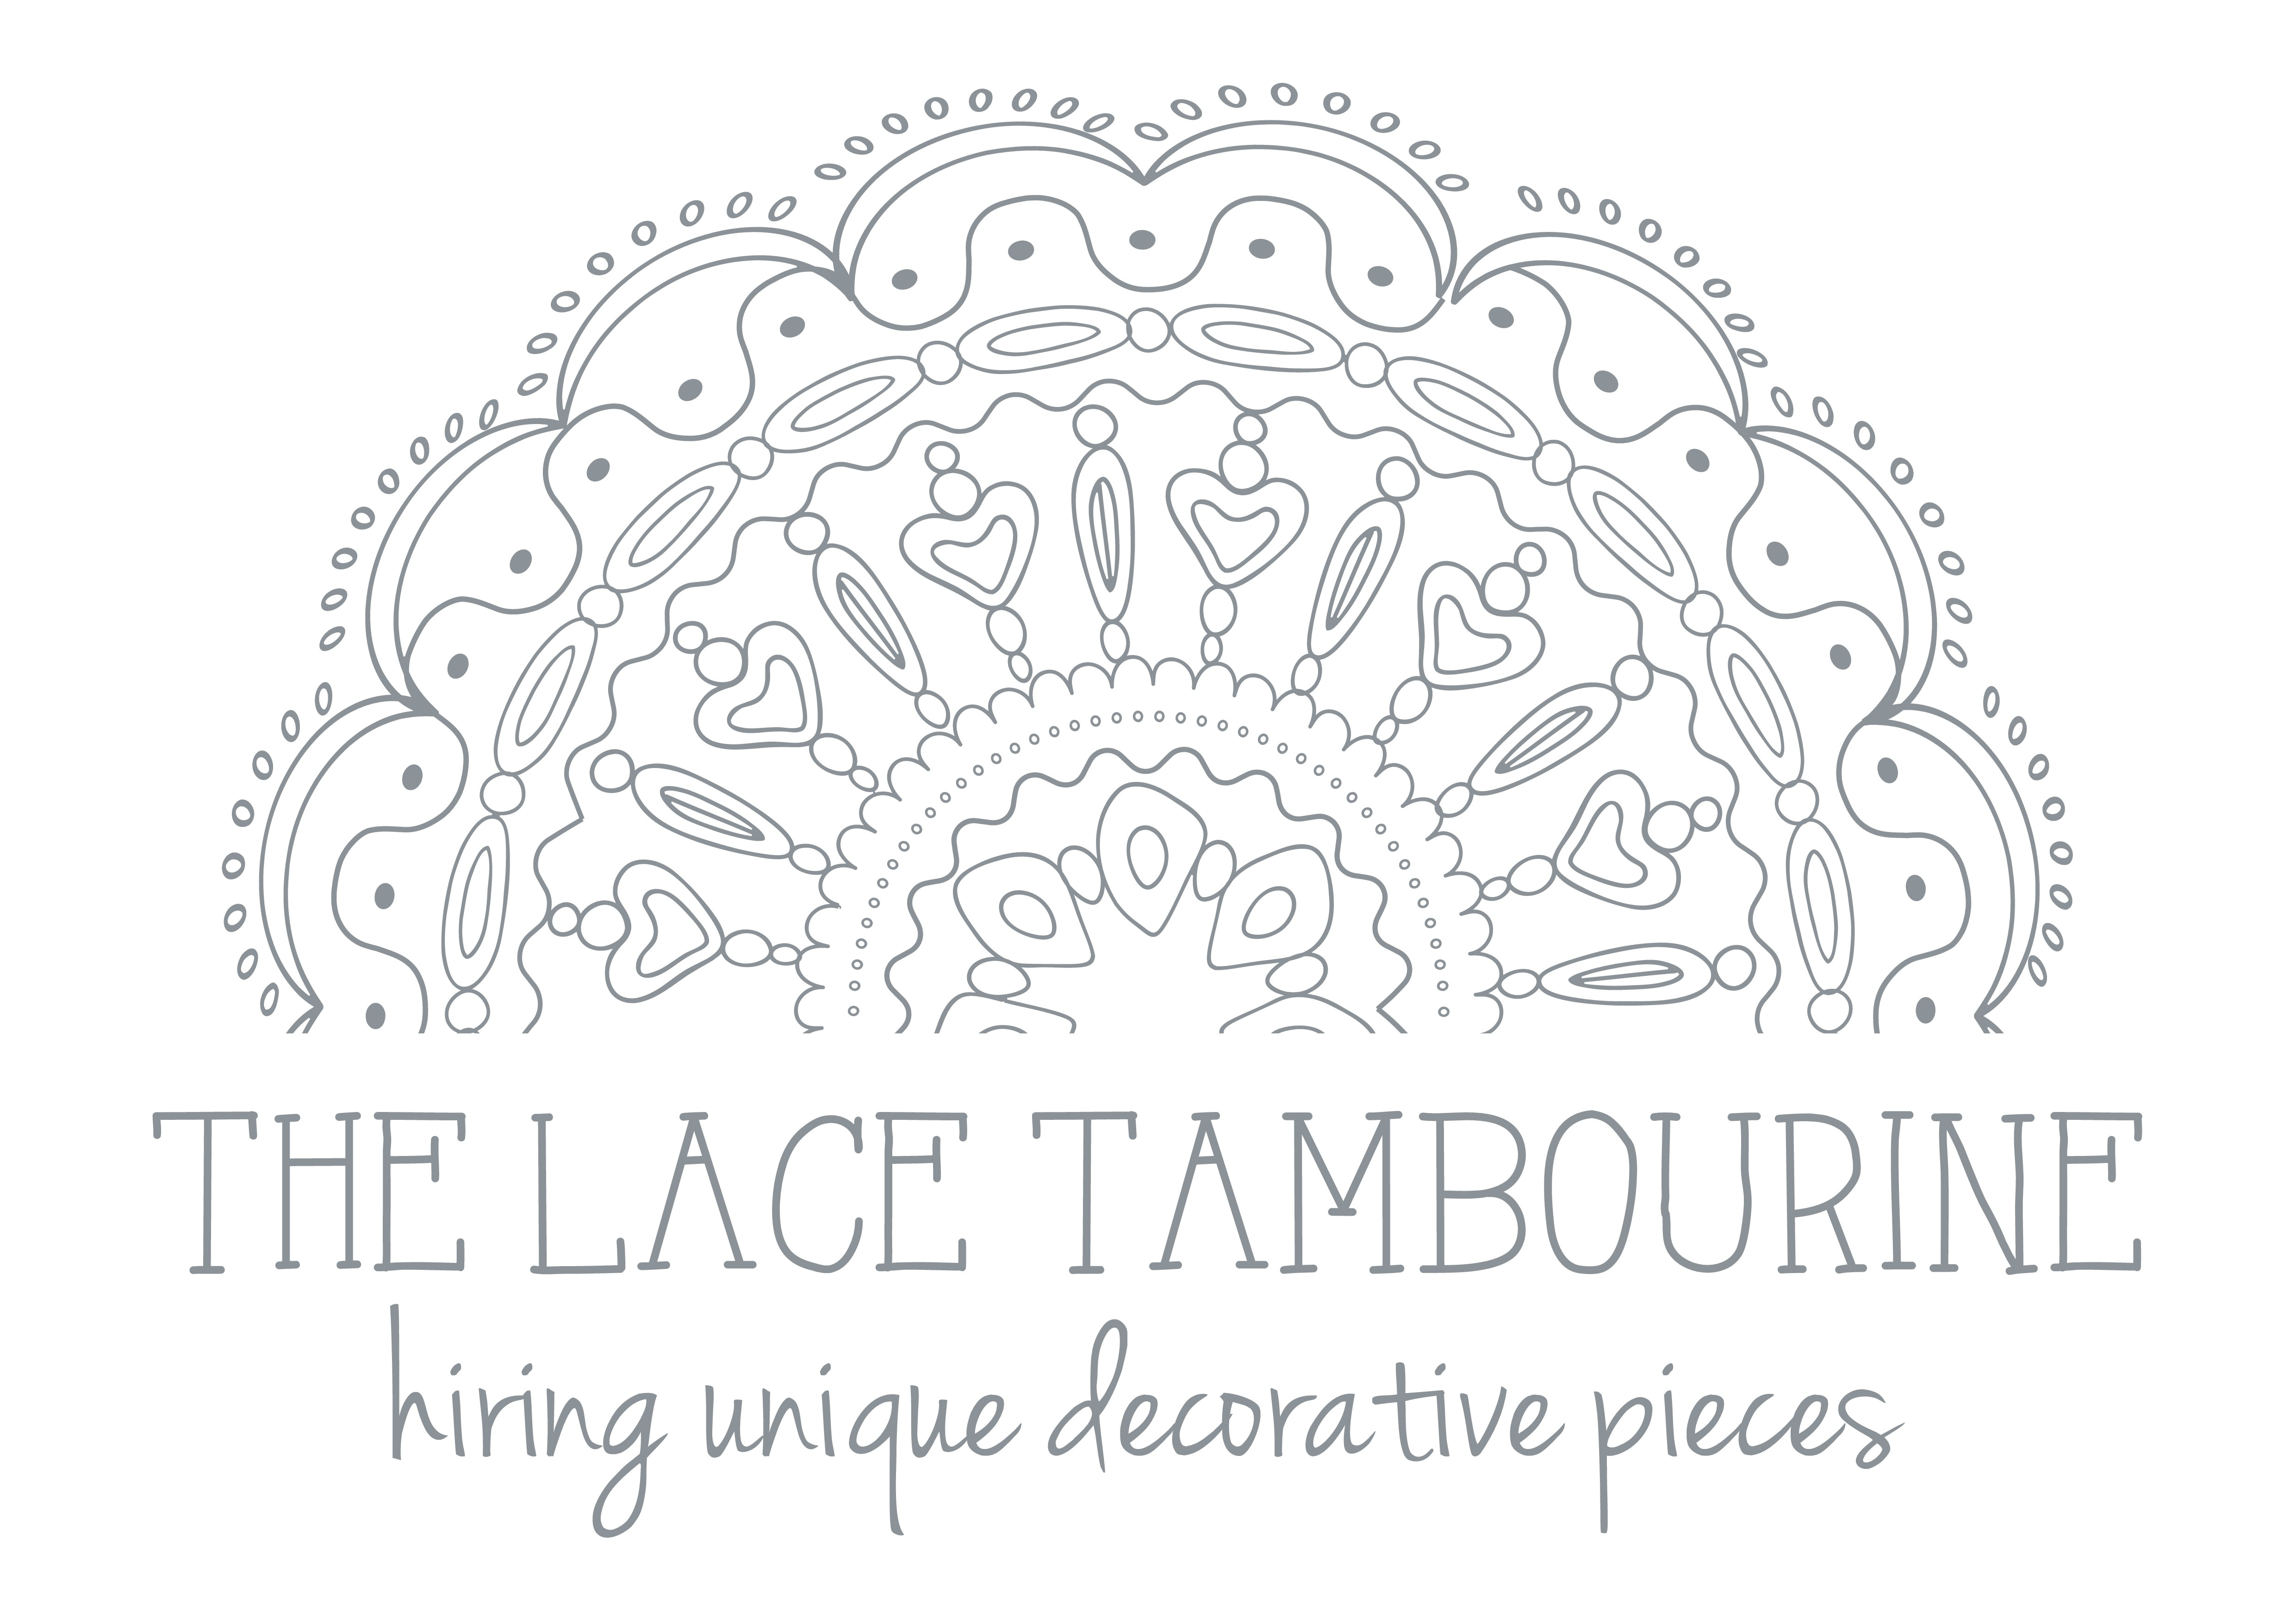 Create a beautiful, romantic and elegant illustration for The Lace Tambourine